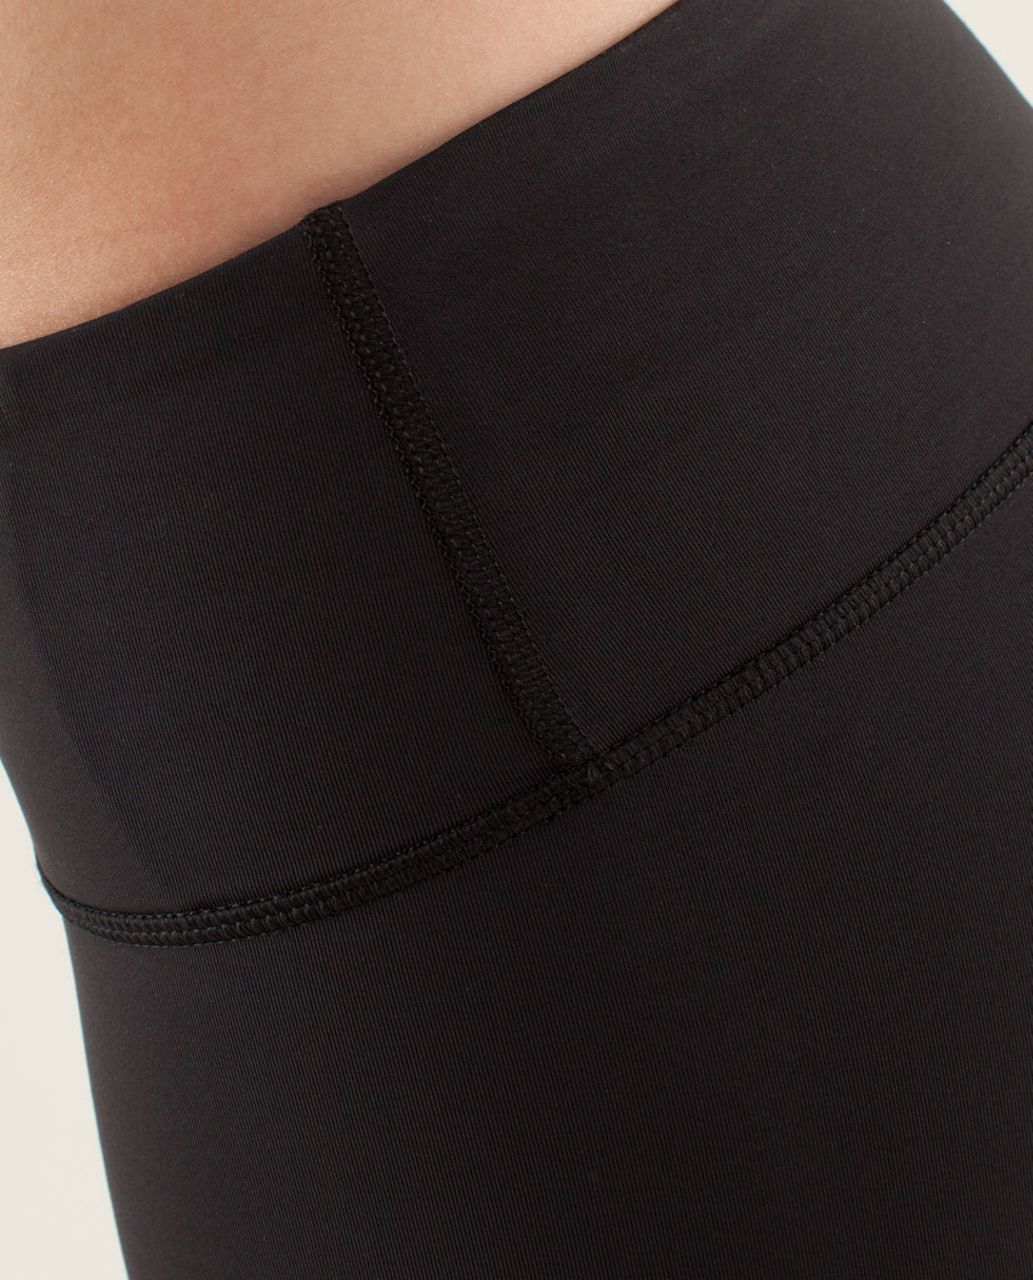 Lululemon Boogie Short *Lux - Black